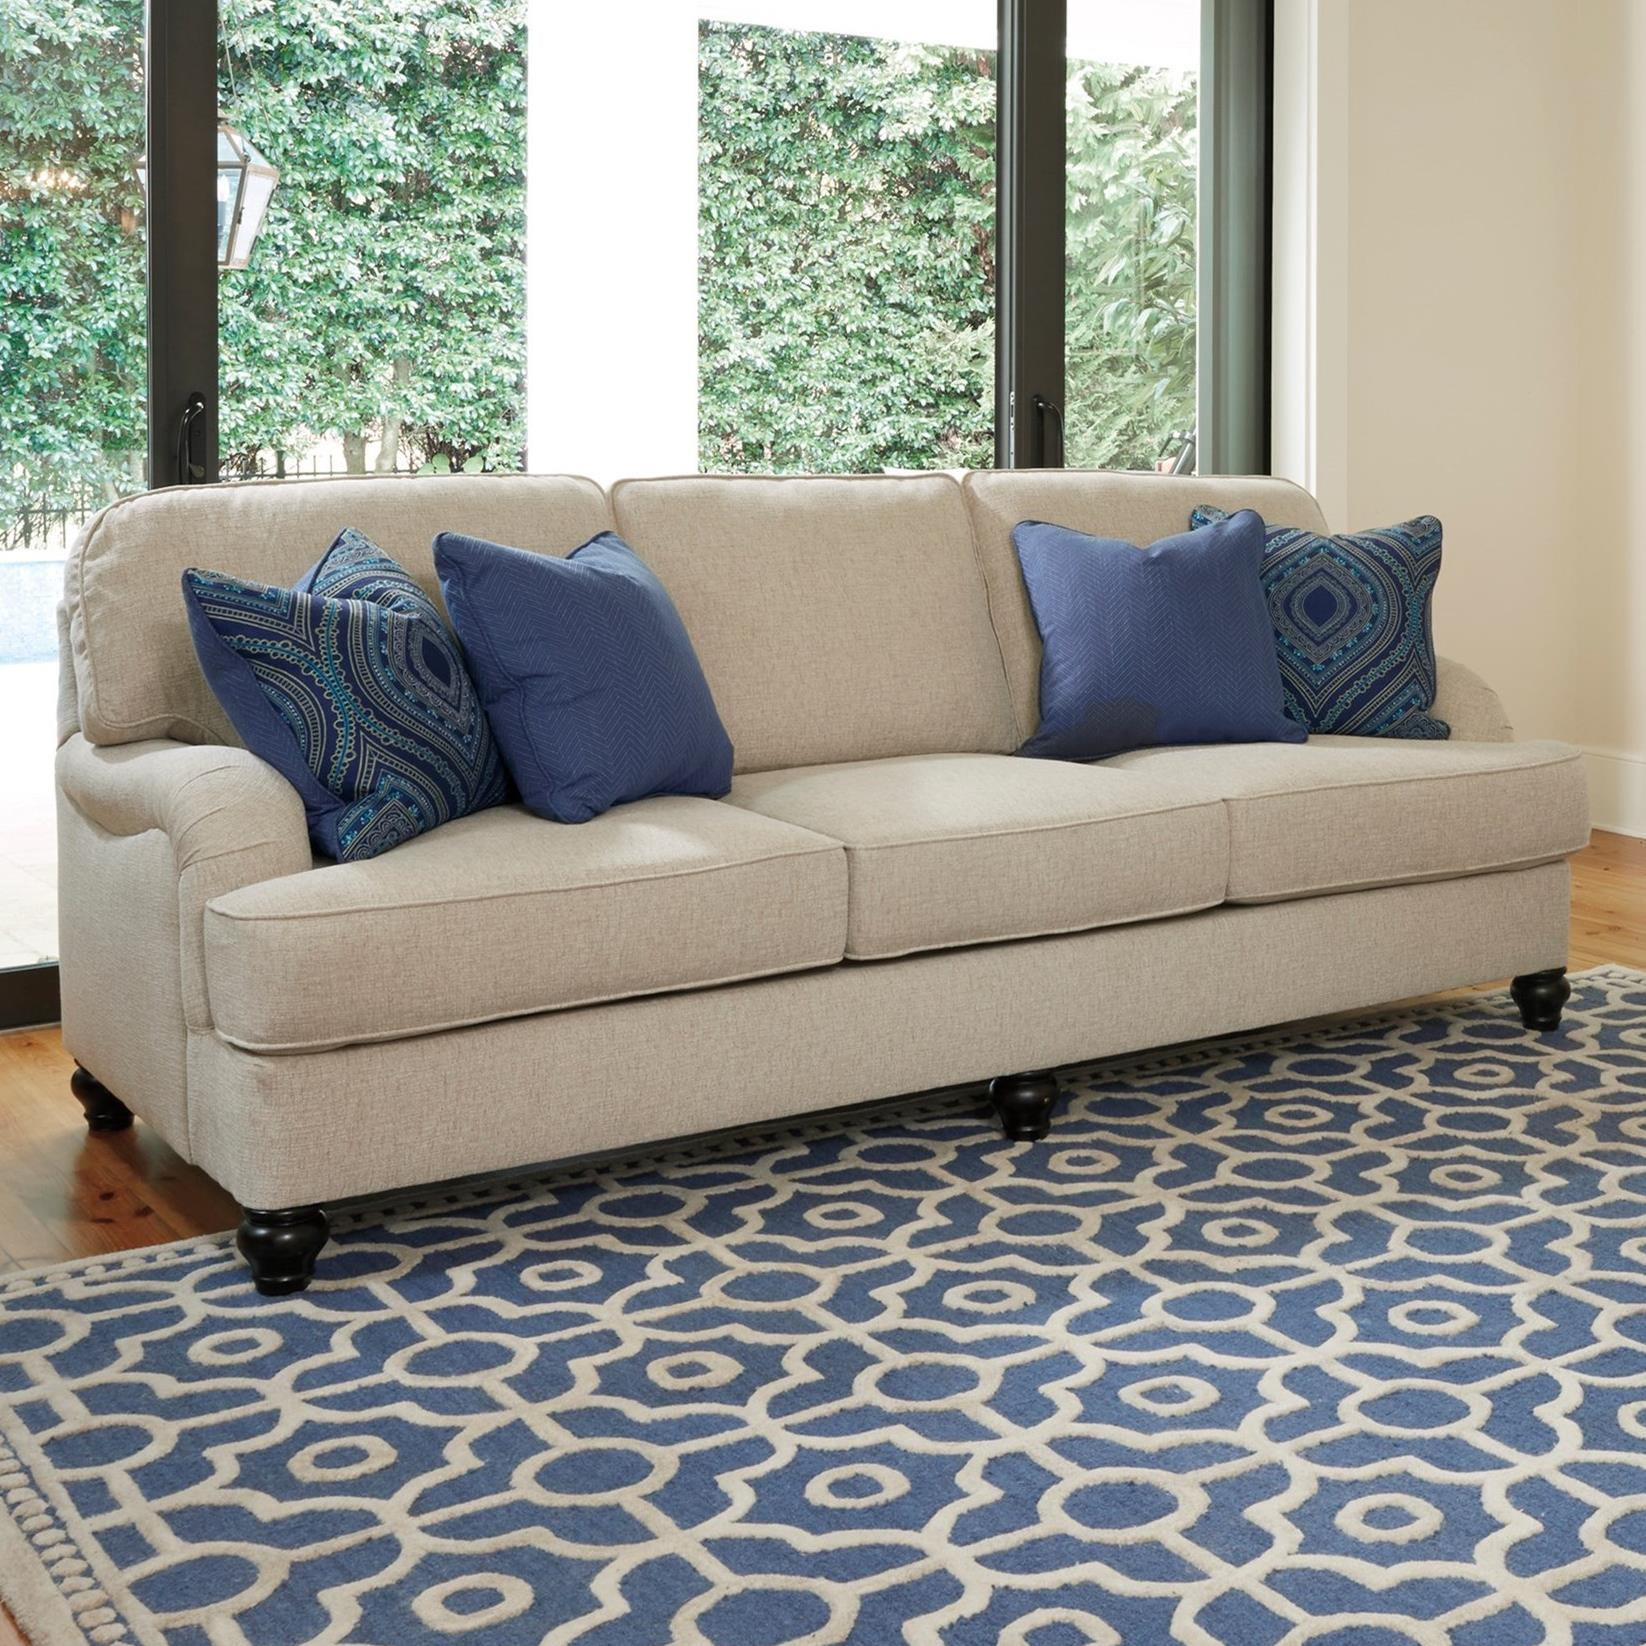 Queen Sofa Sleeper With Memory Foam Mattress & English Arms